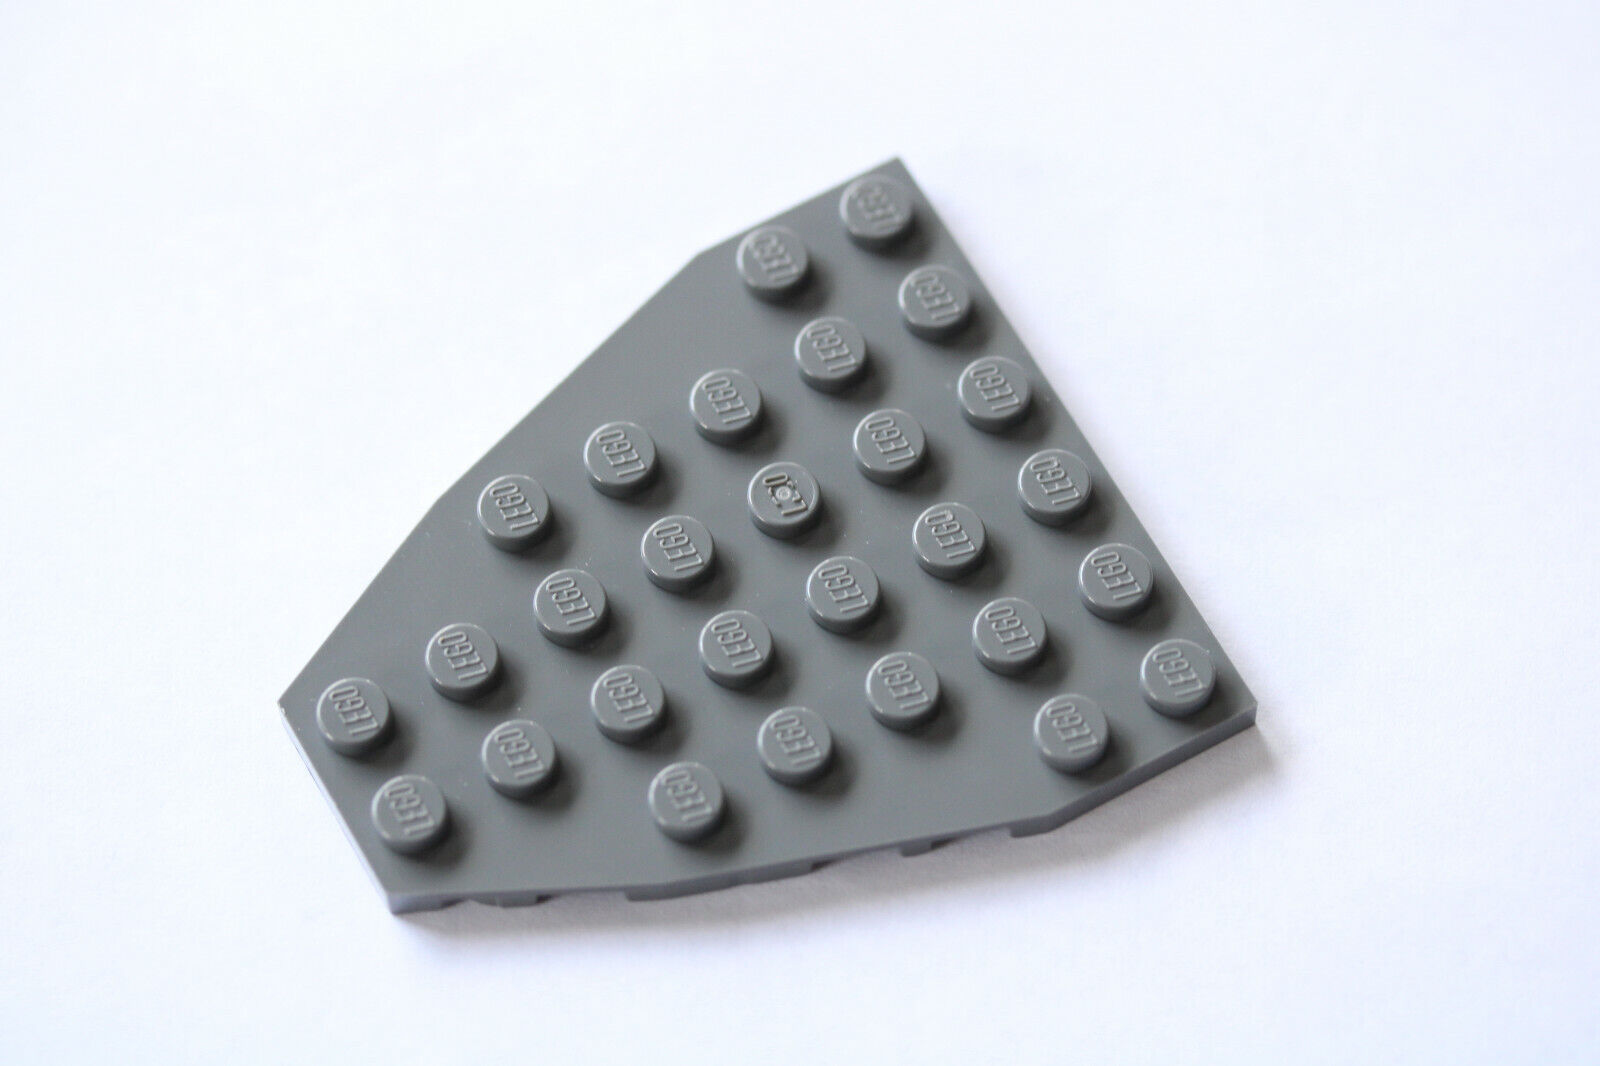 Lego Wedge  Plate 7x6 Part 2625  Boat Bow Plate Without Studs Blue